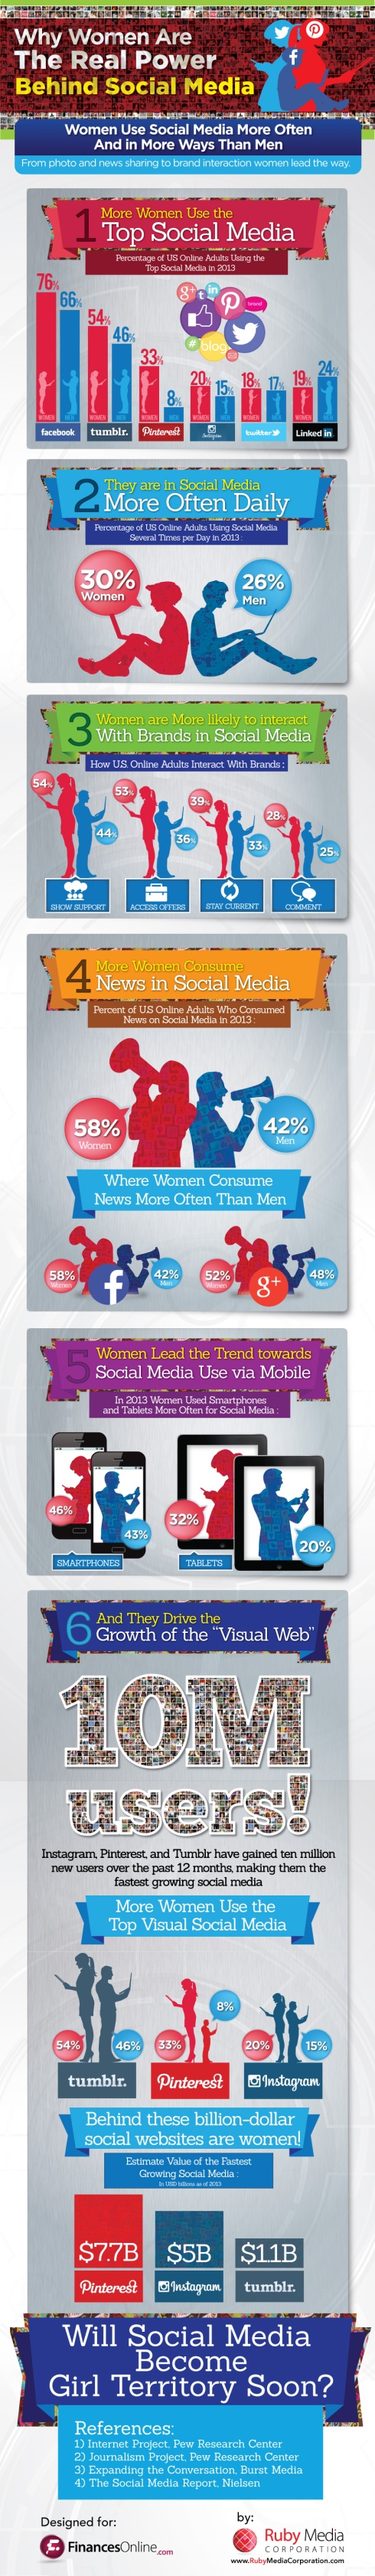 women-dominating-social-media-infographic